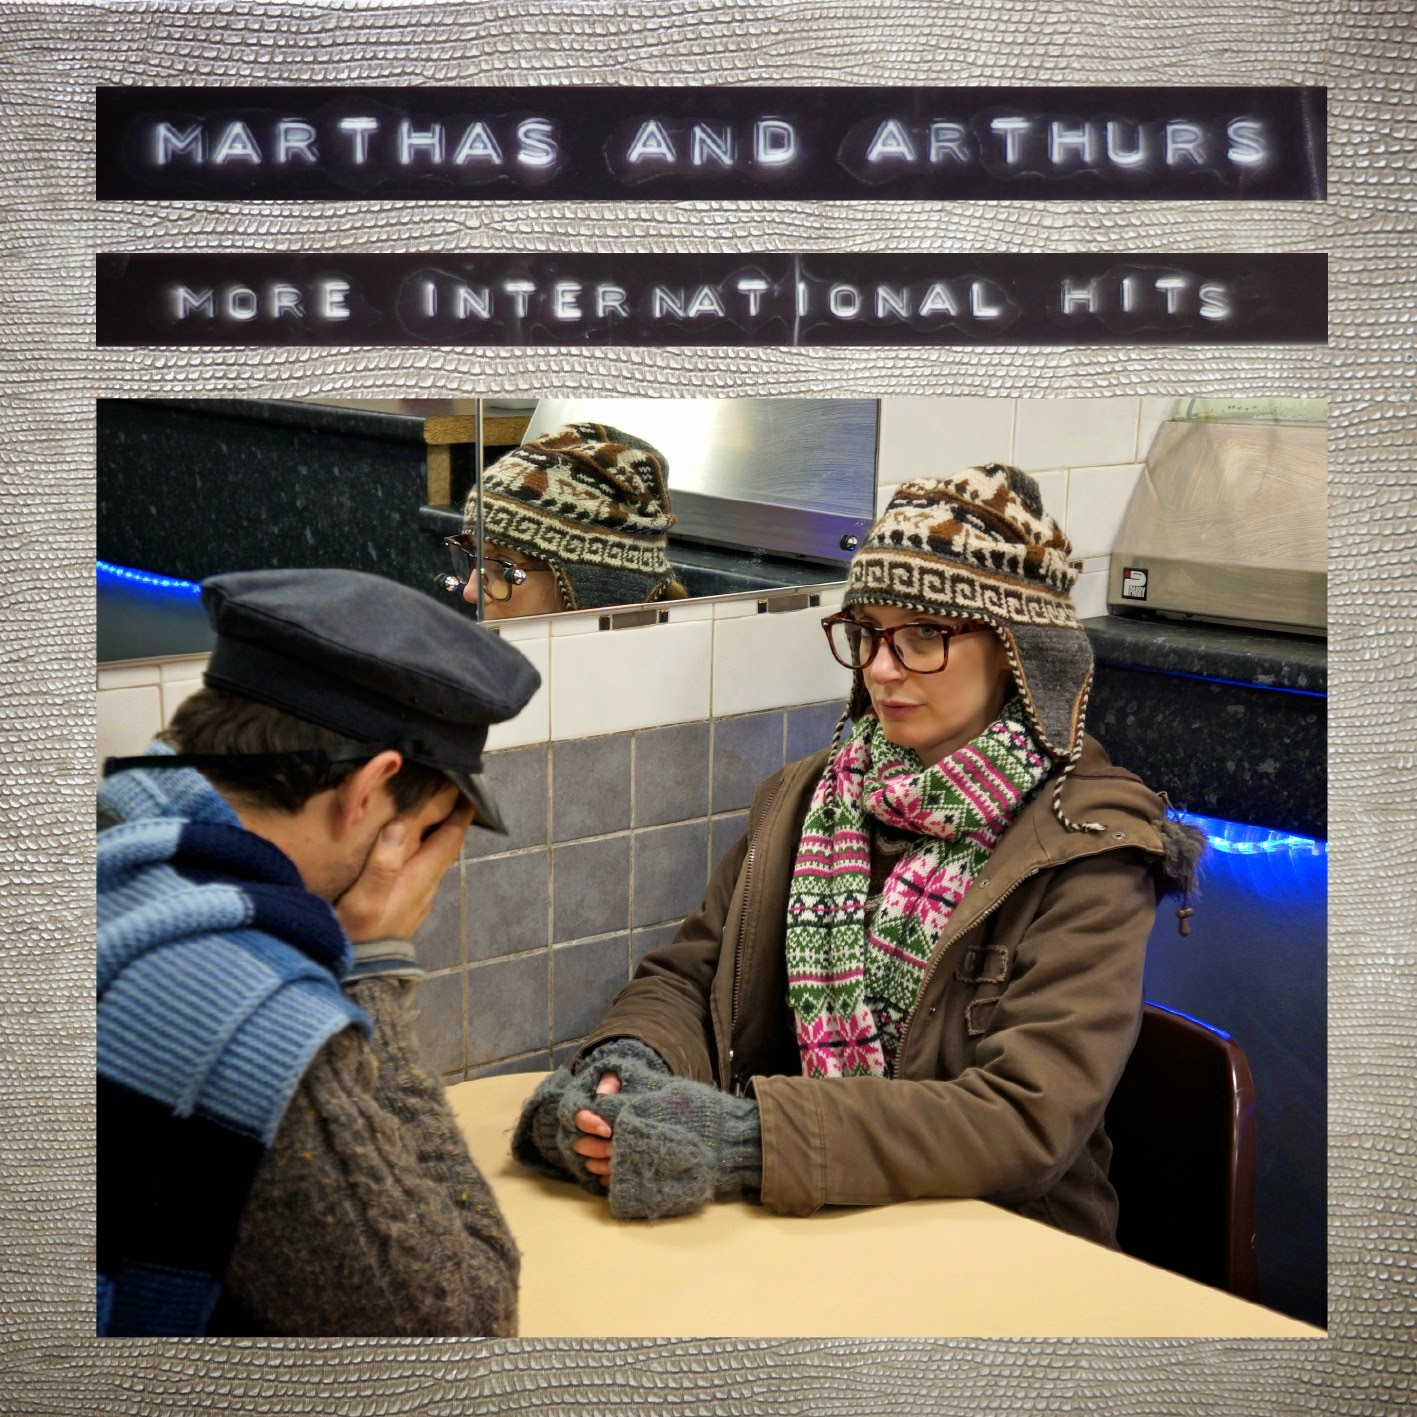 Marthas & Arthurs - More International Hits